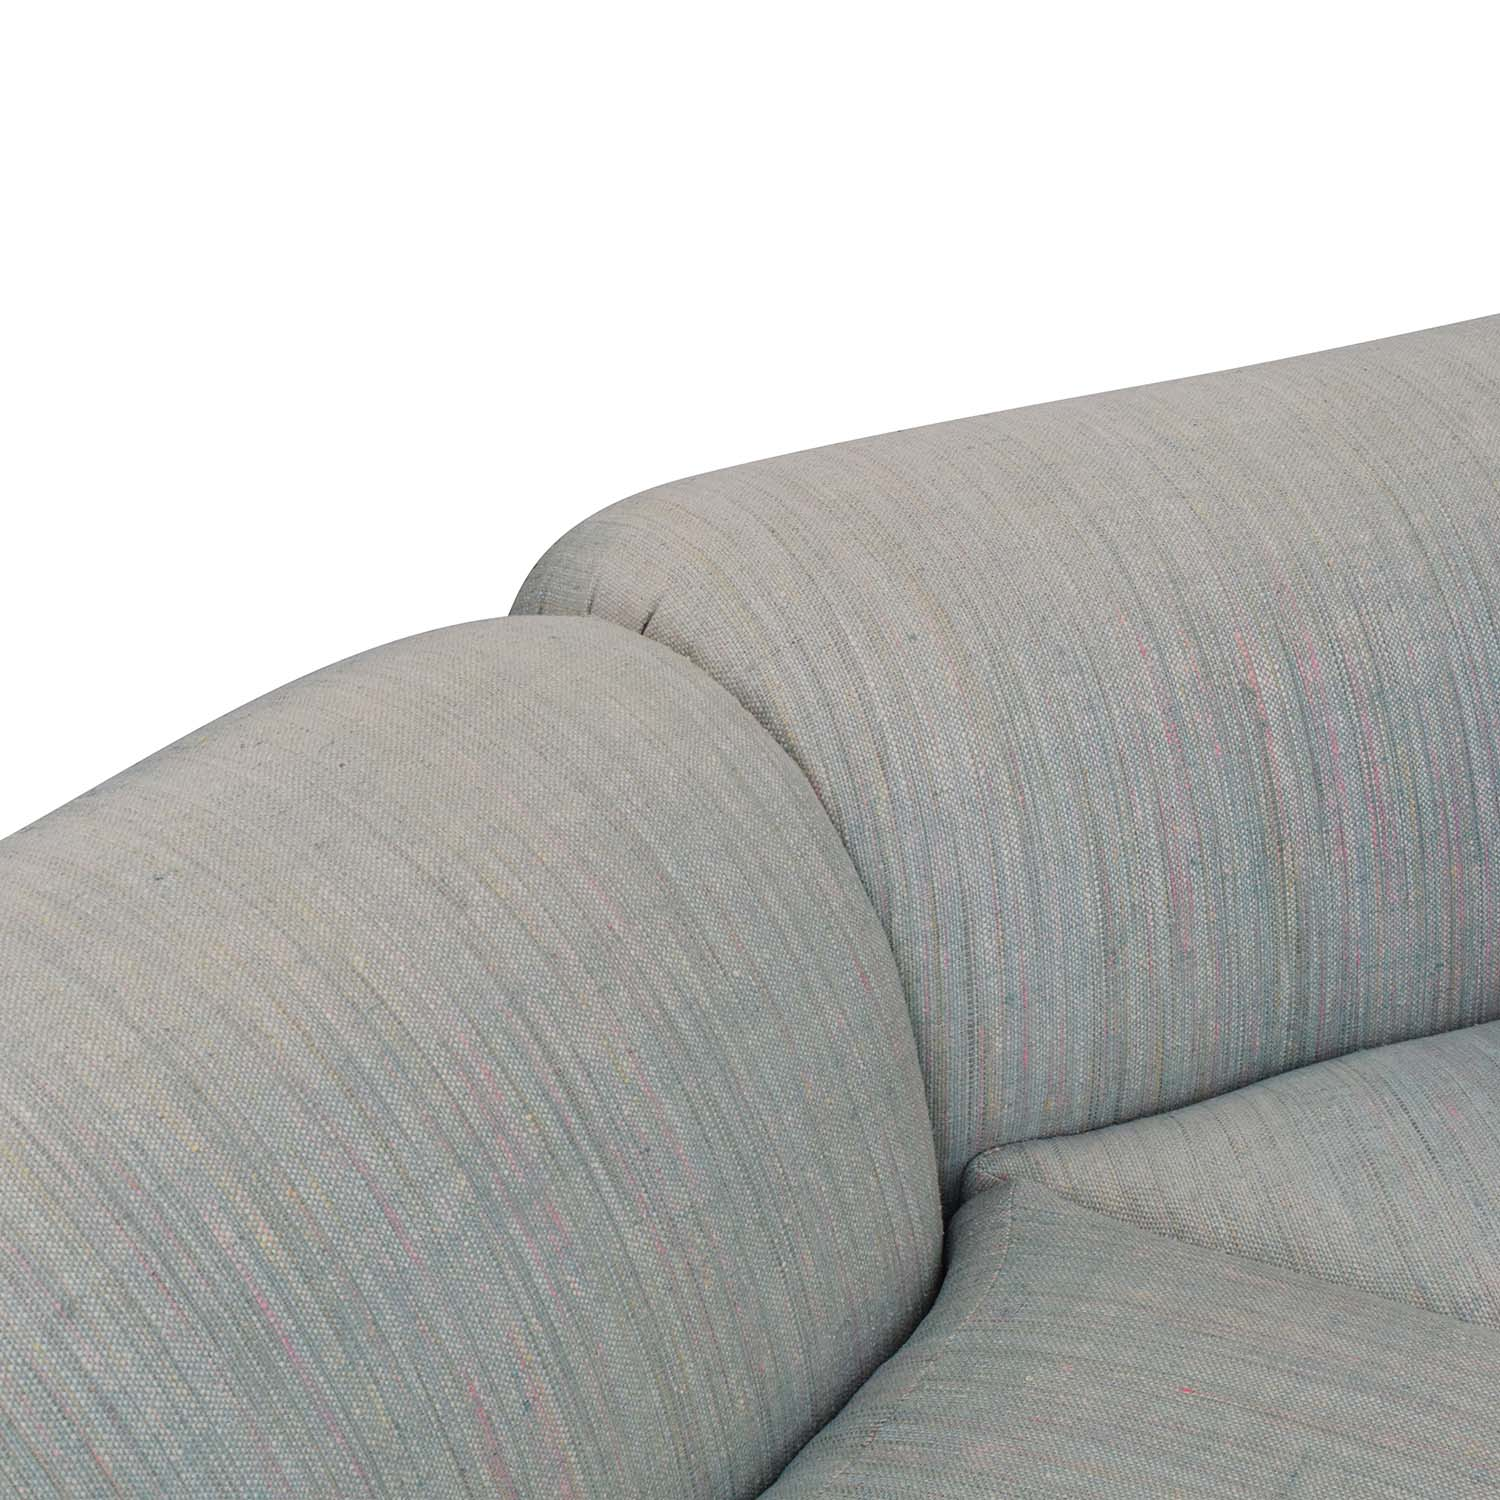 Preview Furniture Preview Furniture David L. James Curved Corner Sectional Sofa second hand